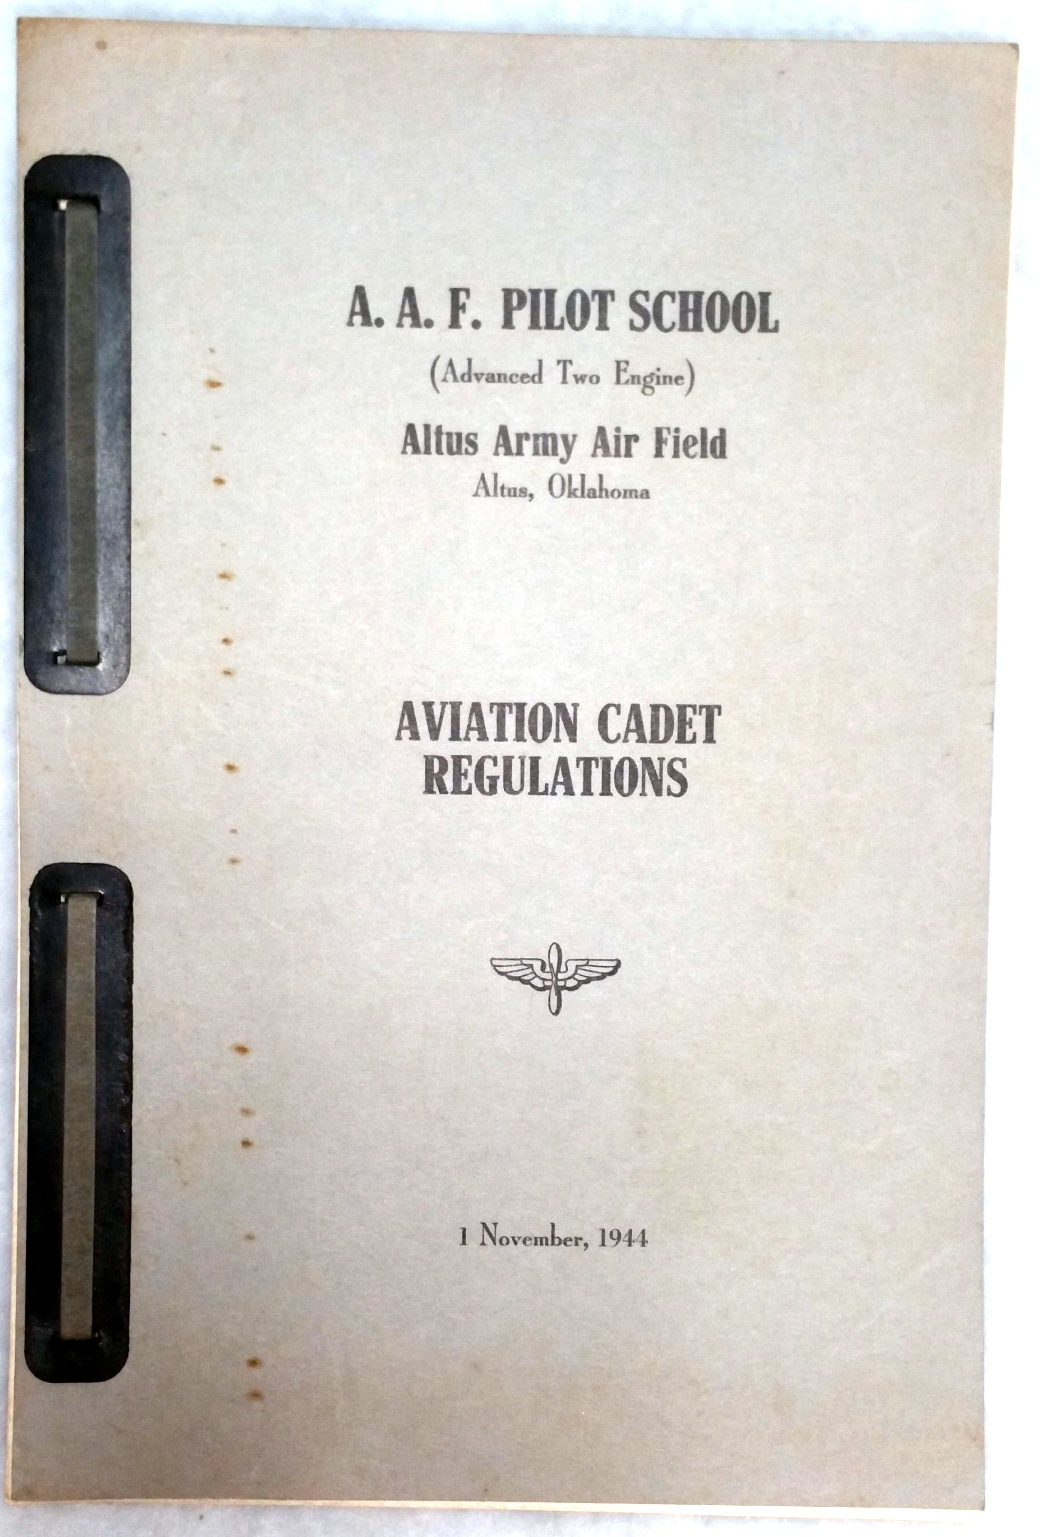 Image for A.A.F. Pilot School (Advanced Two Engine) Altus Army Air Field, Altus, Oklahoma, Aviation Cadet Regulations